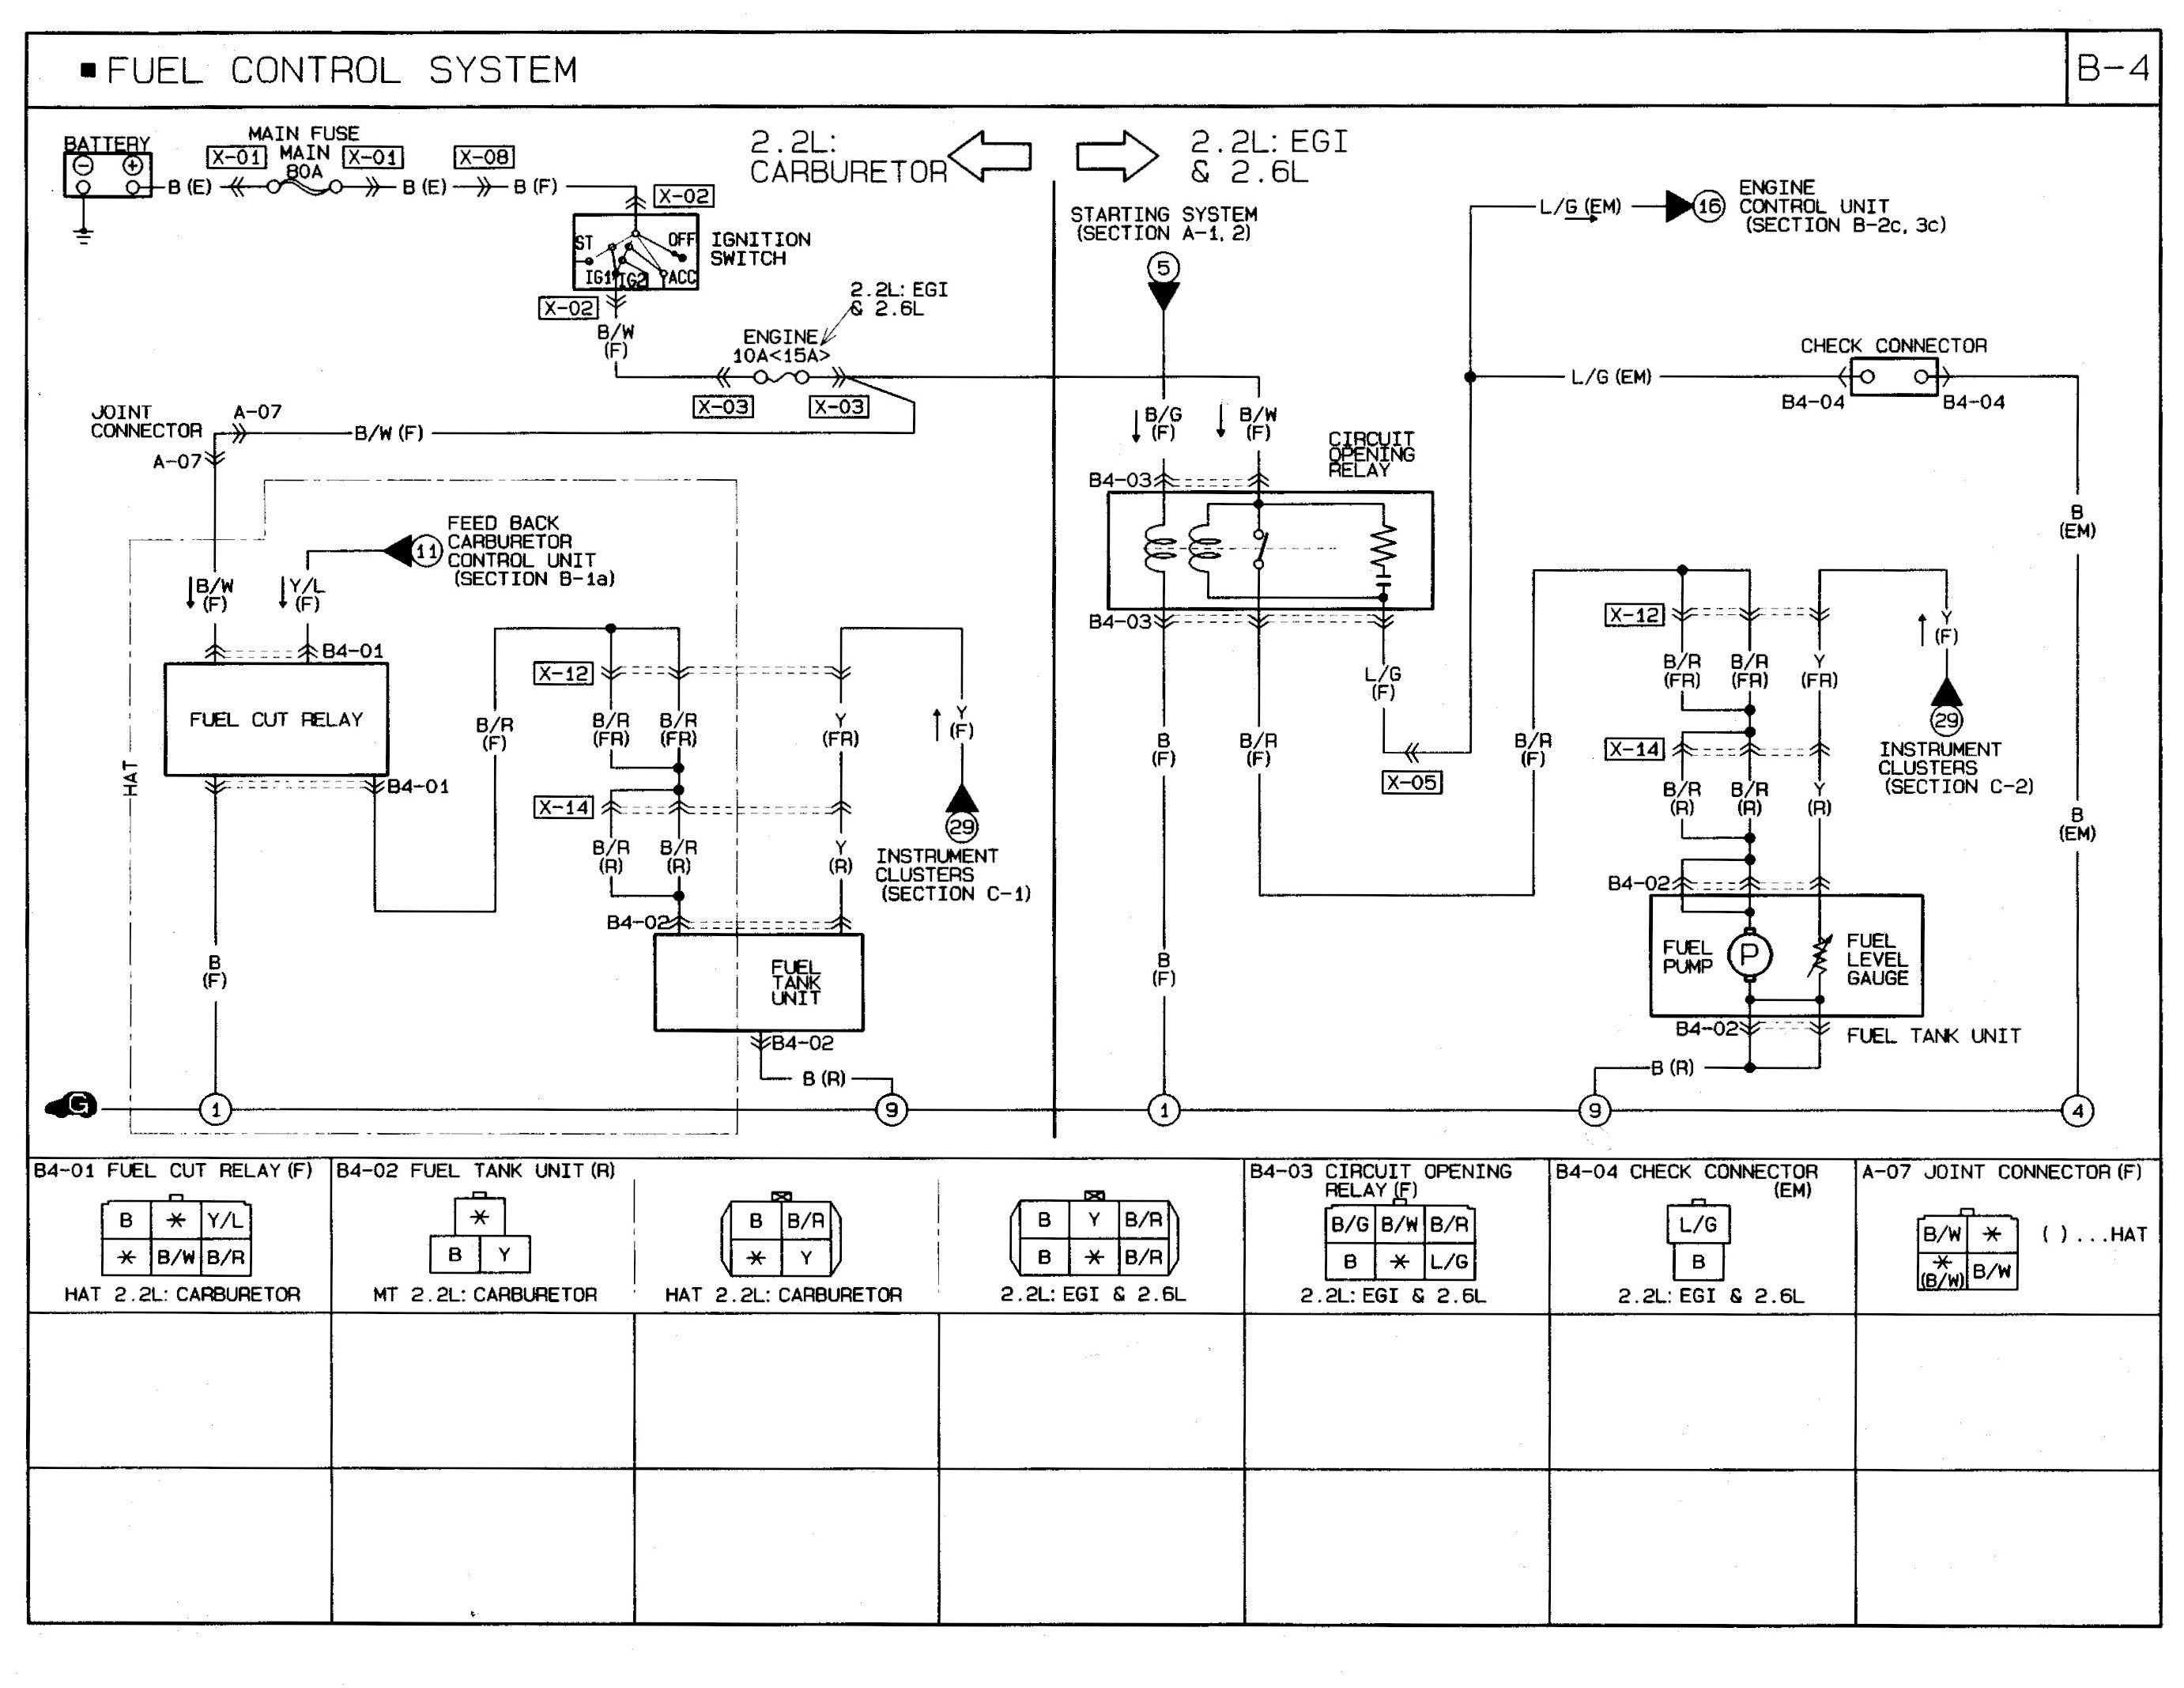 DIAGRAM] 01 Mazda Protege Diagram Wiring Schematic FULL Version HD Quality Wiring  Schematic - CRAKPDF.RESTAURANT-FRANCO-ARMENIEN-BORDEAUX.FRcrakpdf.restaurant-franco-armenien-bordeaux.fr